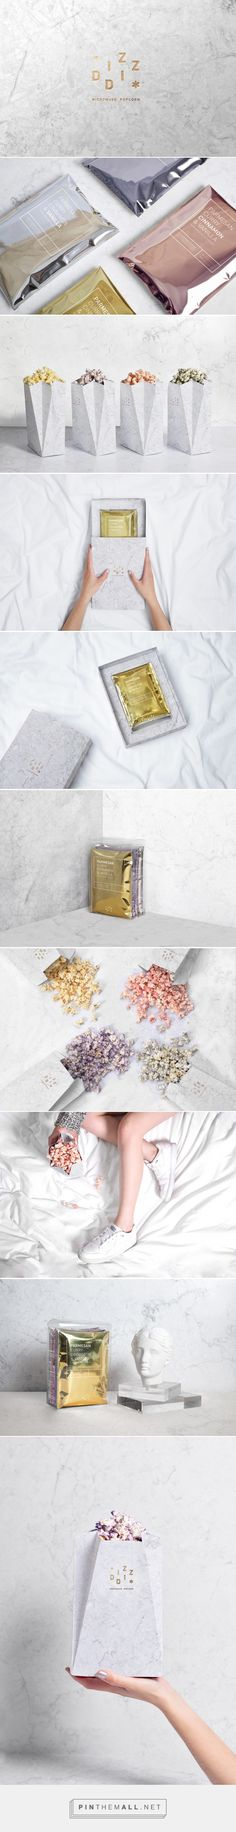 Diz-Diz Popcorn Packaging by Tatabi Studio on Behance